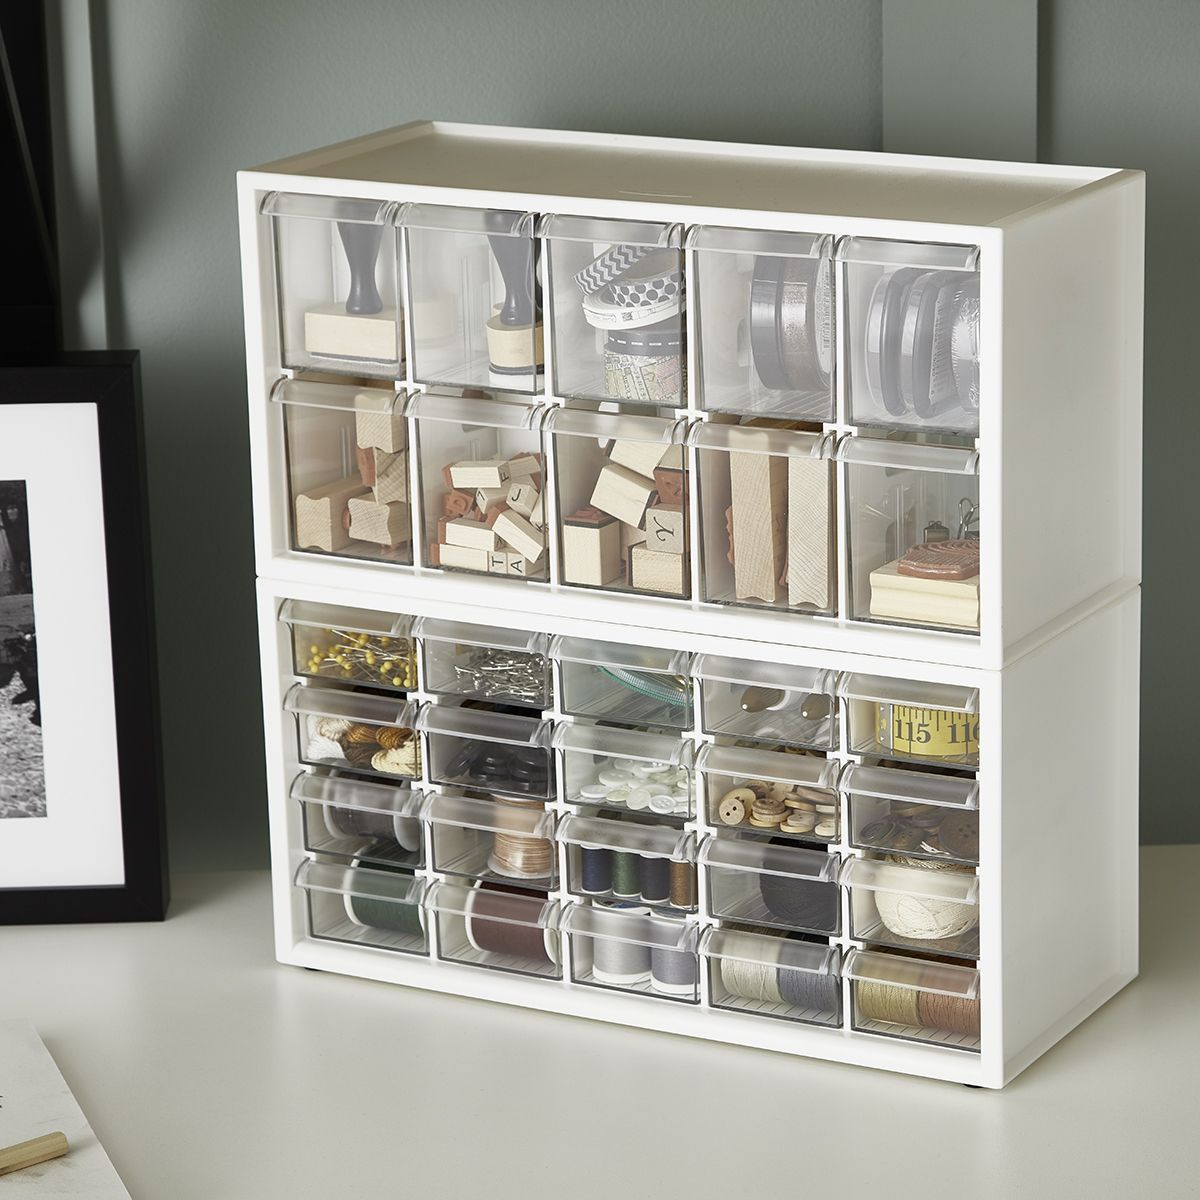 A Storage Box Or Drawer For Ever Type Of Craft Supply The Perfect Parts Box For Every Type Of Crafter Organize Drawers Under Bed Drawers Small Drawer Unit